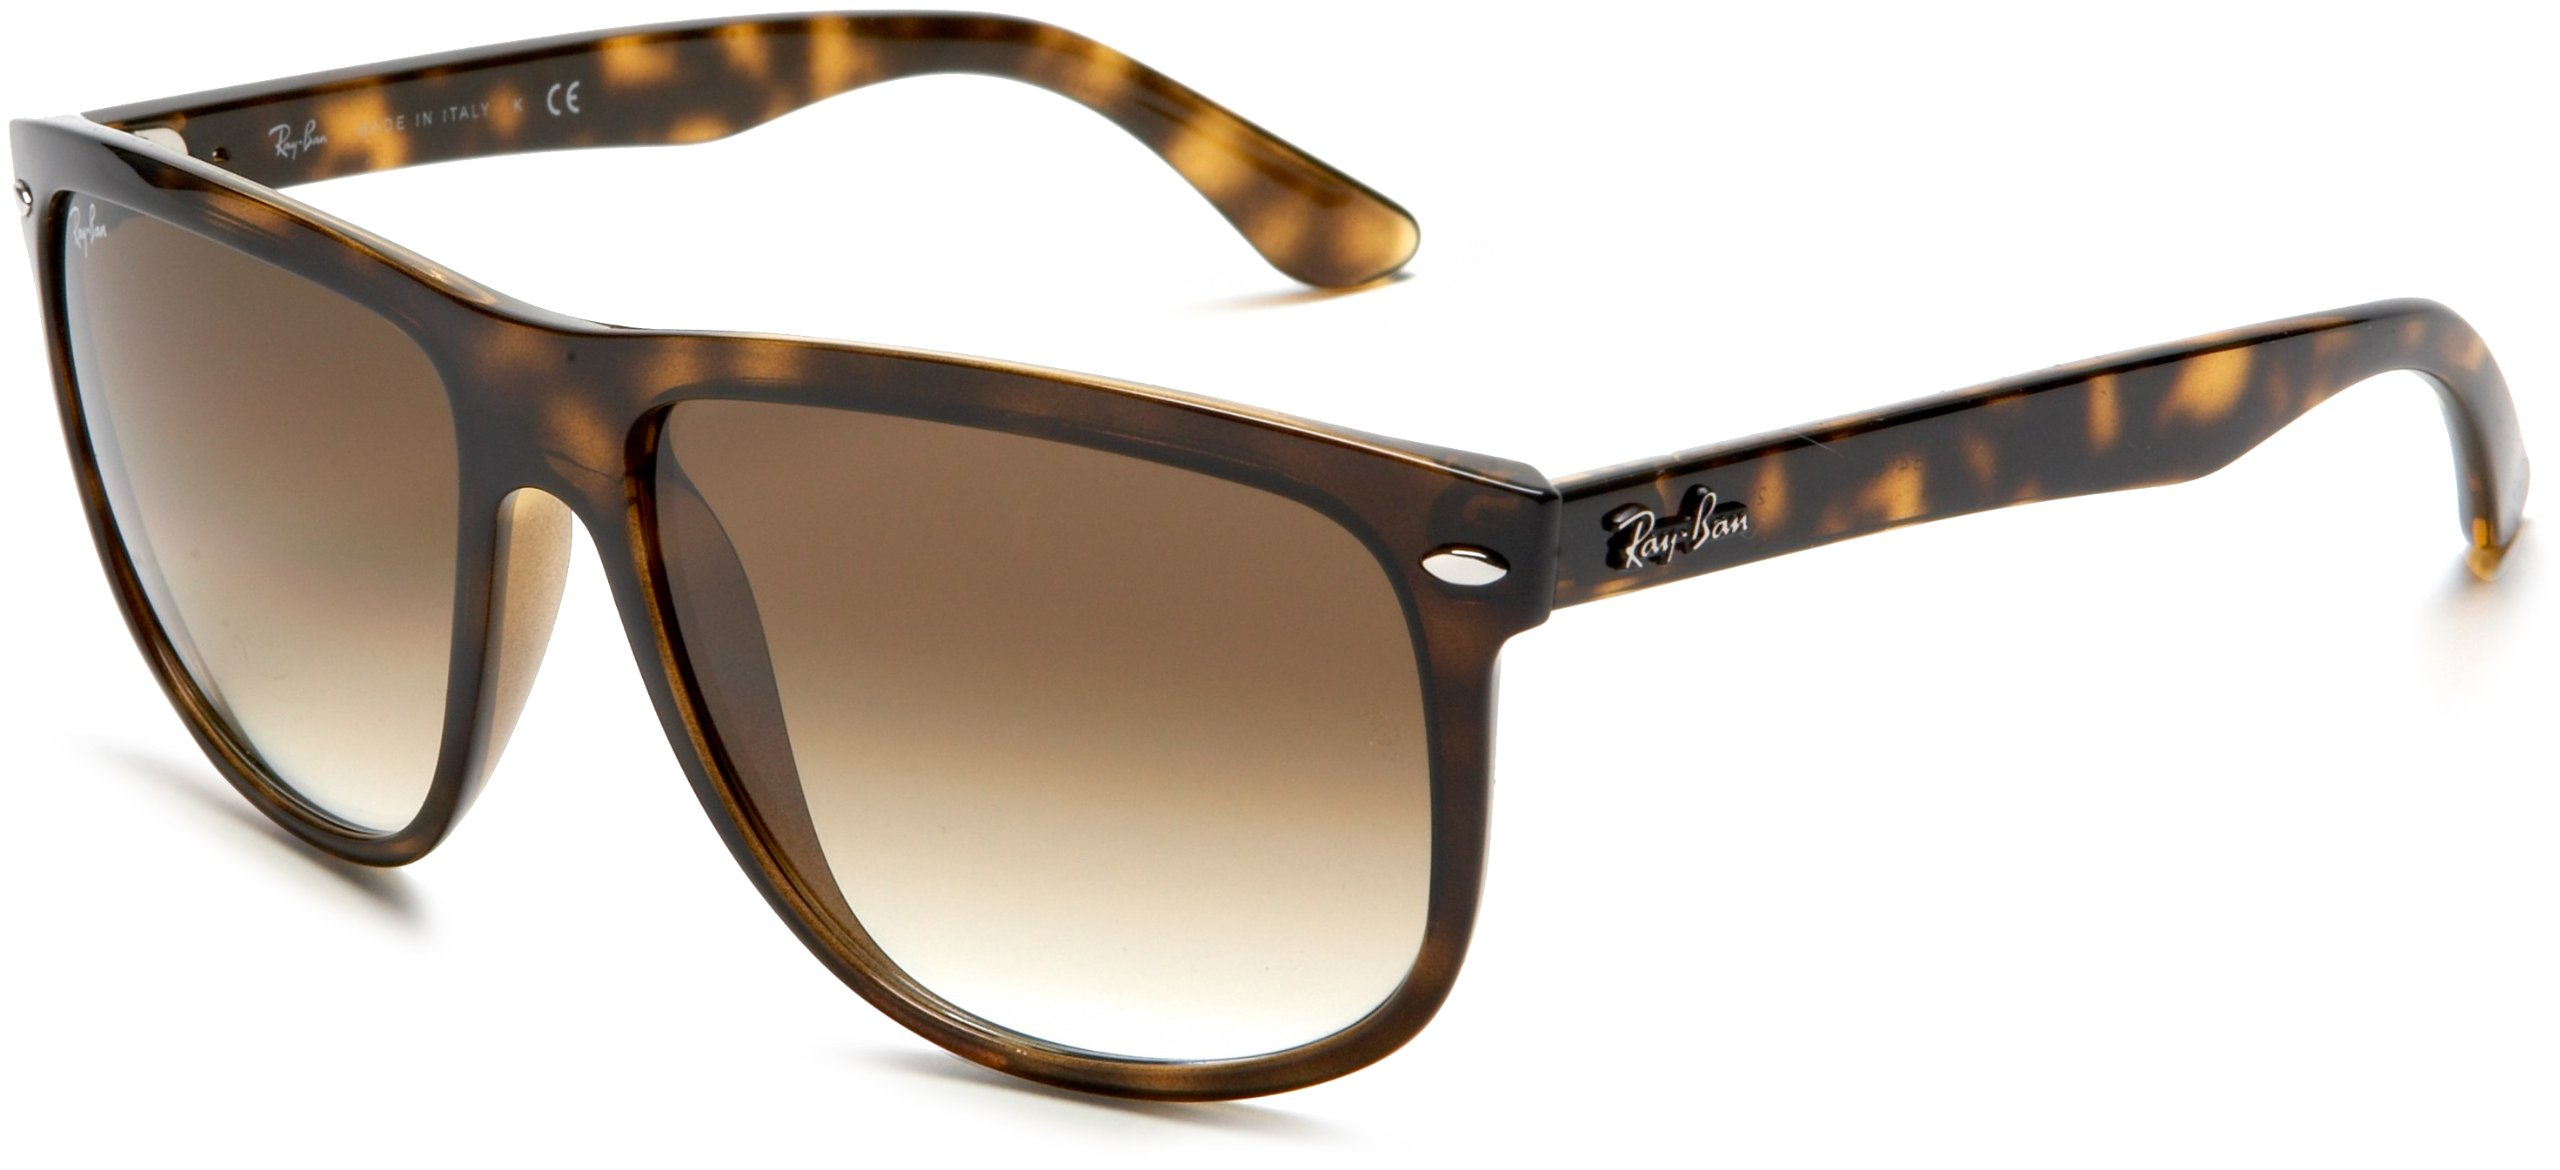 Ray-Ban RB4147 - LIGHT HAVANA Frame CRYSTAL BROWN GRADIENT Lenses 60mm Non-Polarized by Ray-Ban